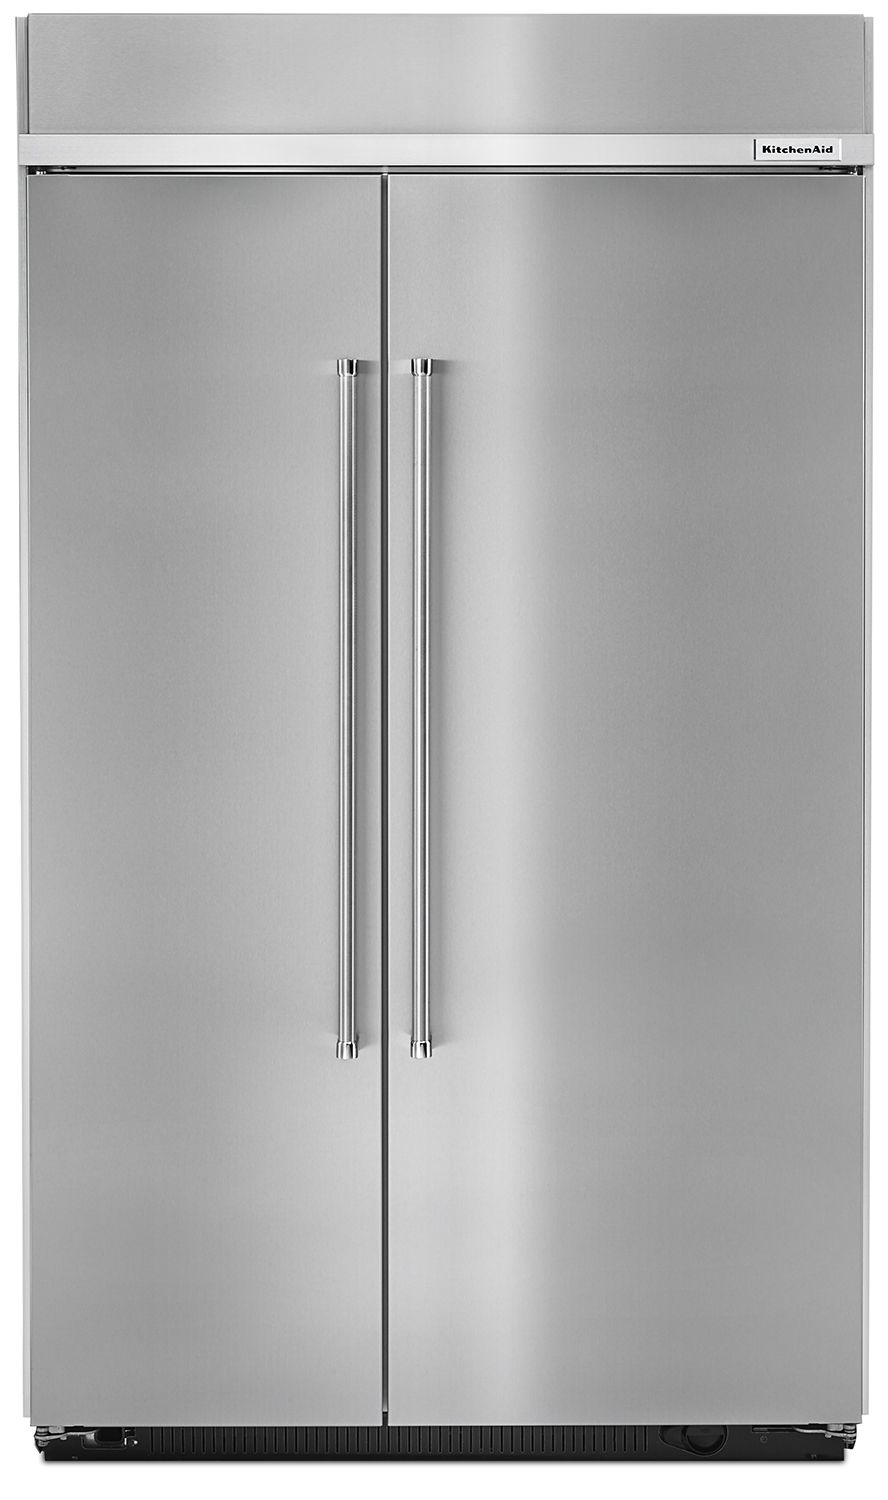 Kitchenaid 30 Cu Ft Stainless Steel Built In Side By Side Refrigerator Kbsn608ess In 2021 Kitchen Aid Side By Side Refrigerator Refrigerator